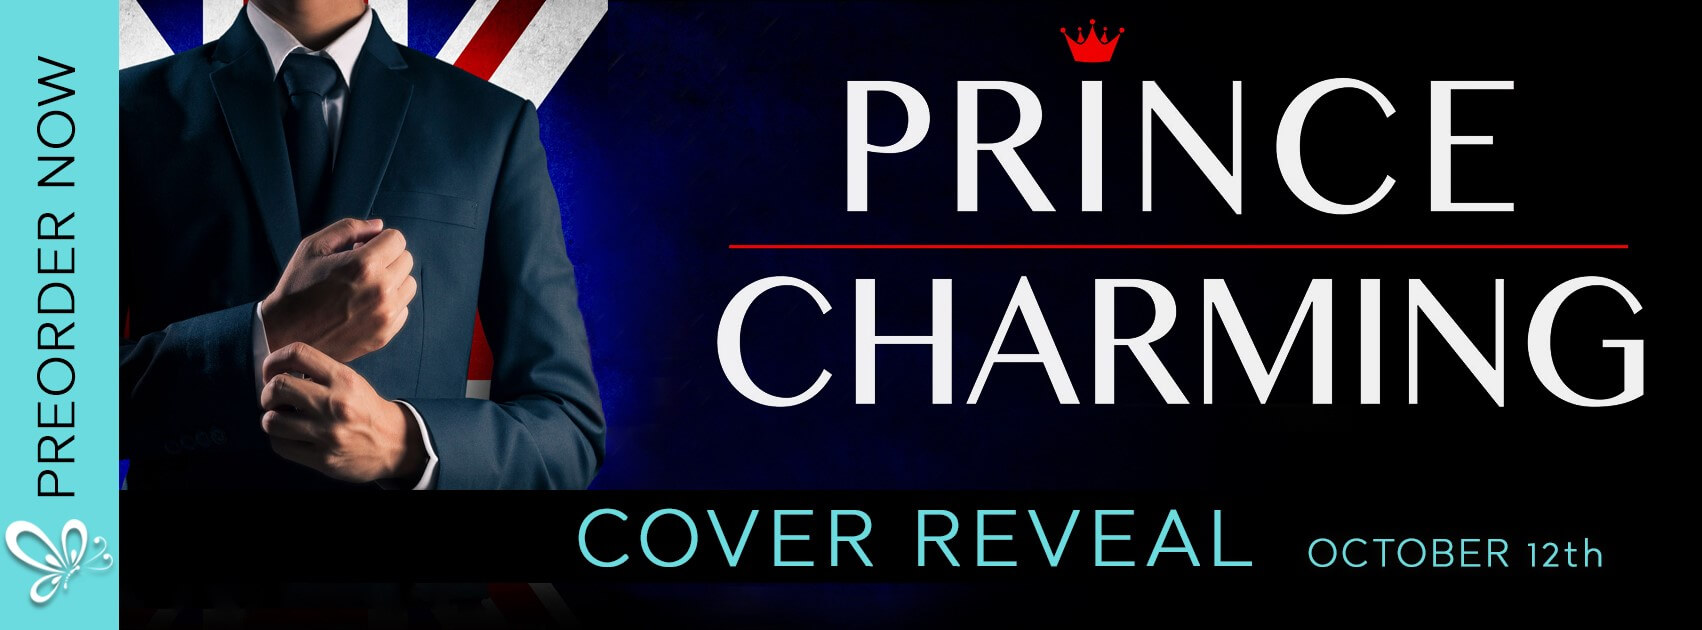 Cover Reveal: Prince Charming by CD Reiss